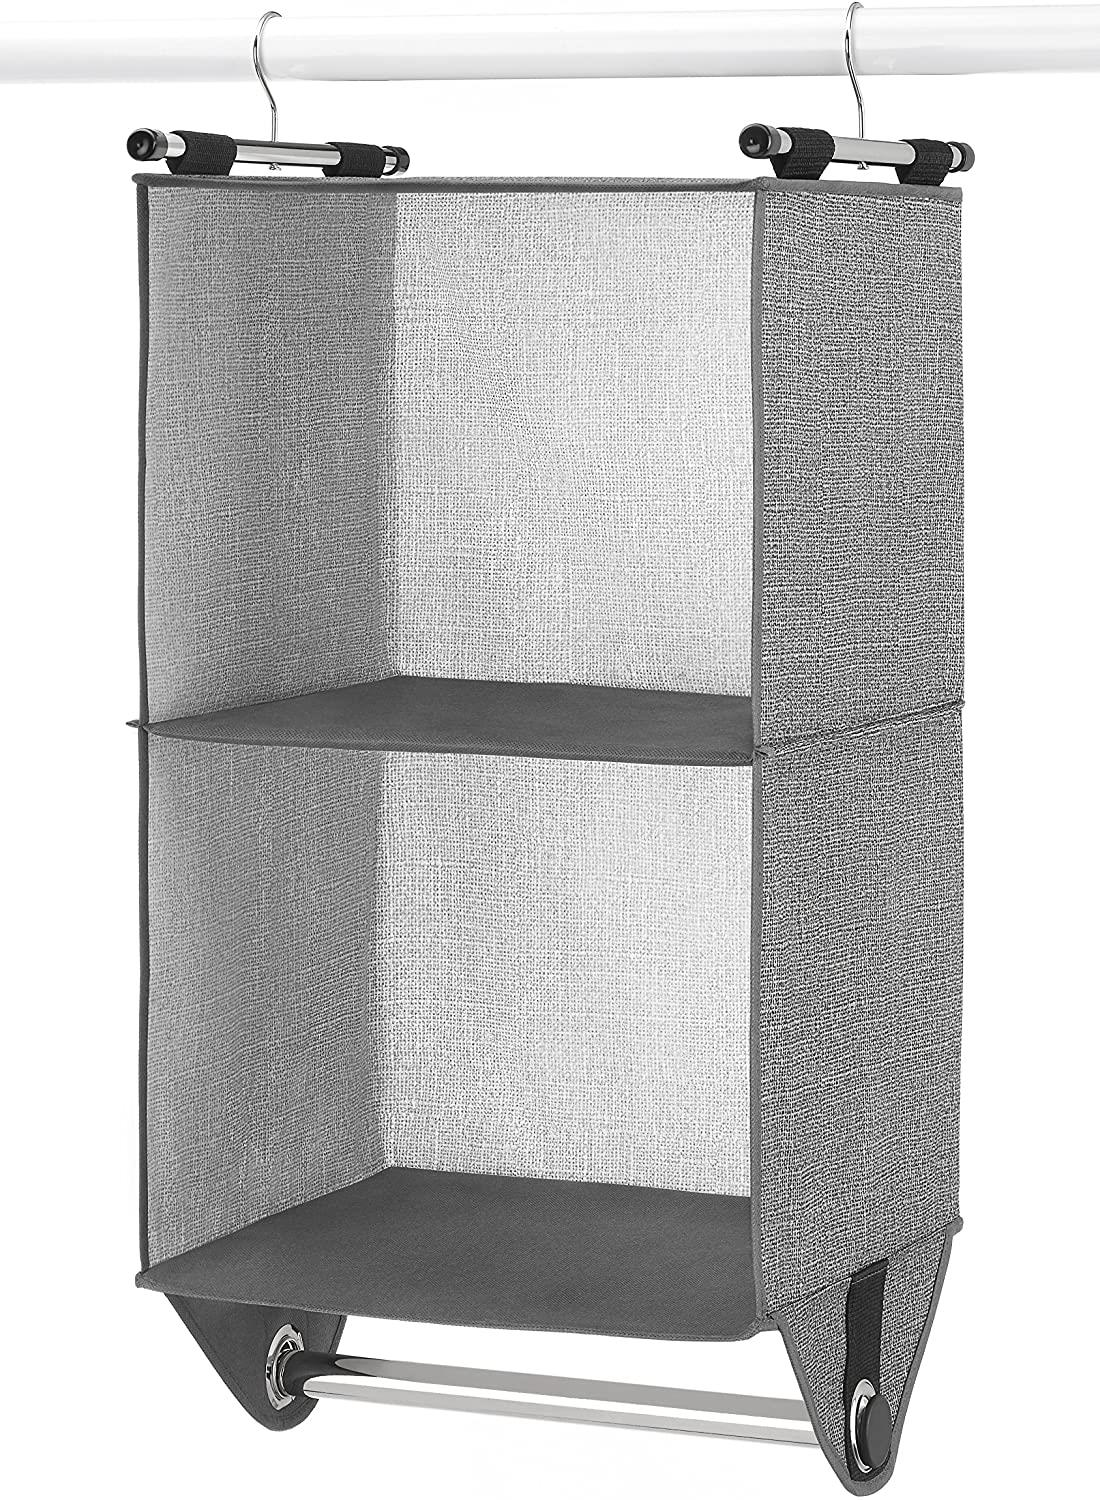 Whitmor CrossHatch 2-Section Hanging Closet Organizer